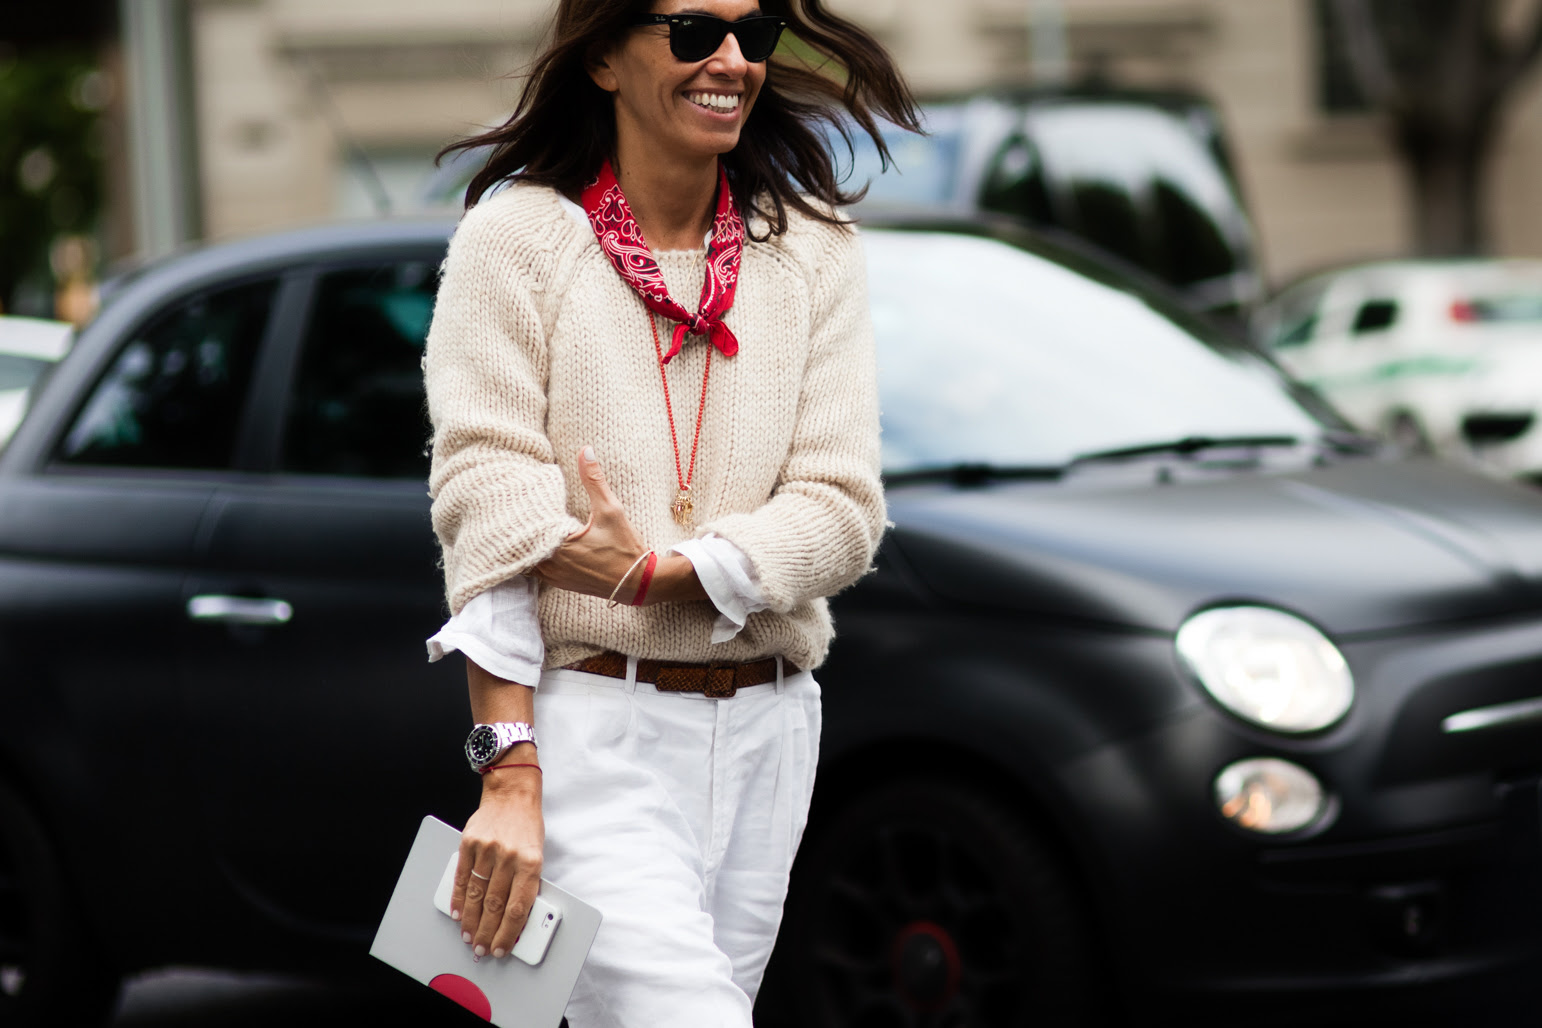 Viviana Volpicella wearing a white outfit and a red bandana scarf in Milan, Italy